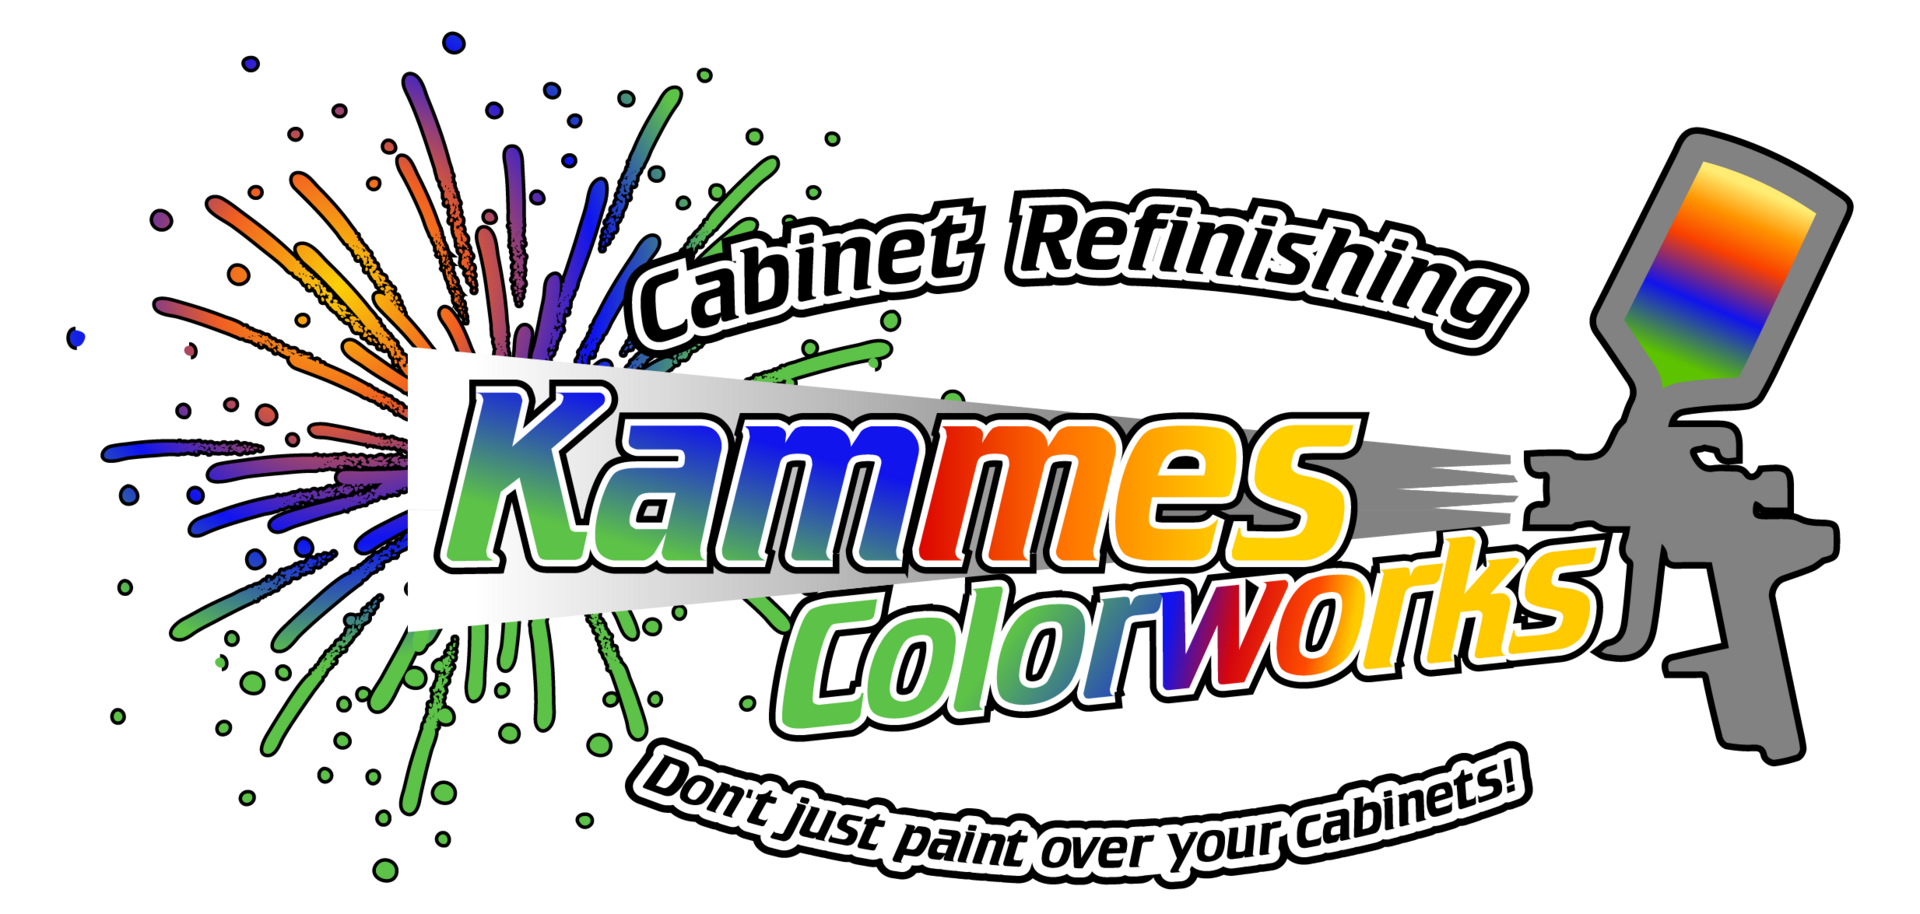 Kitchen Cabinet Painting- Kammes Colorworks Cabinet